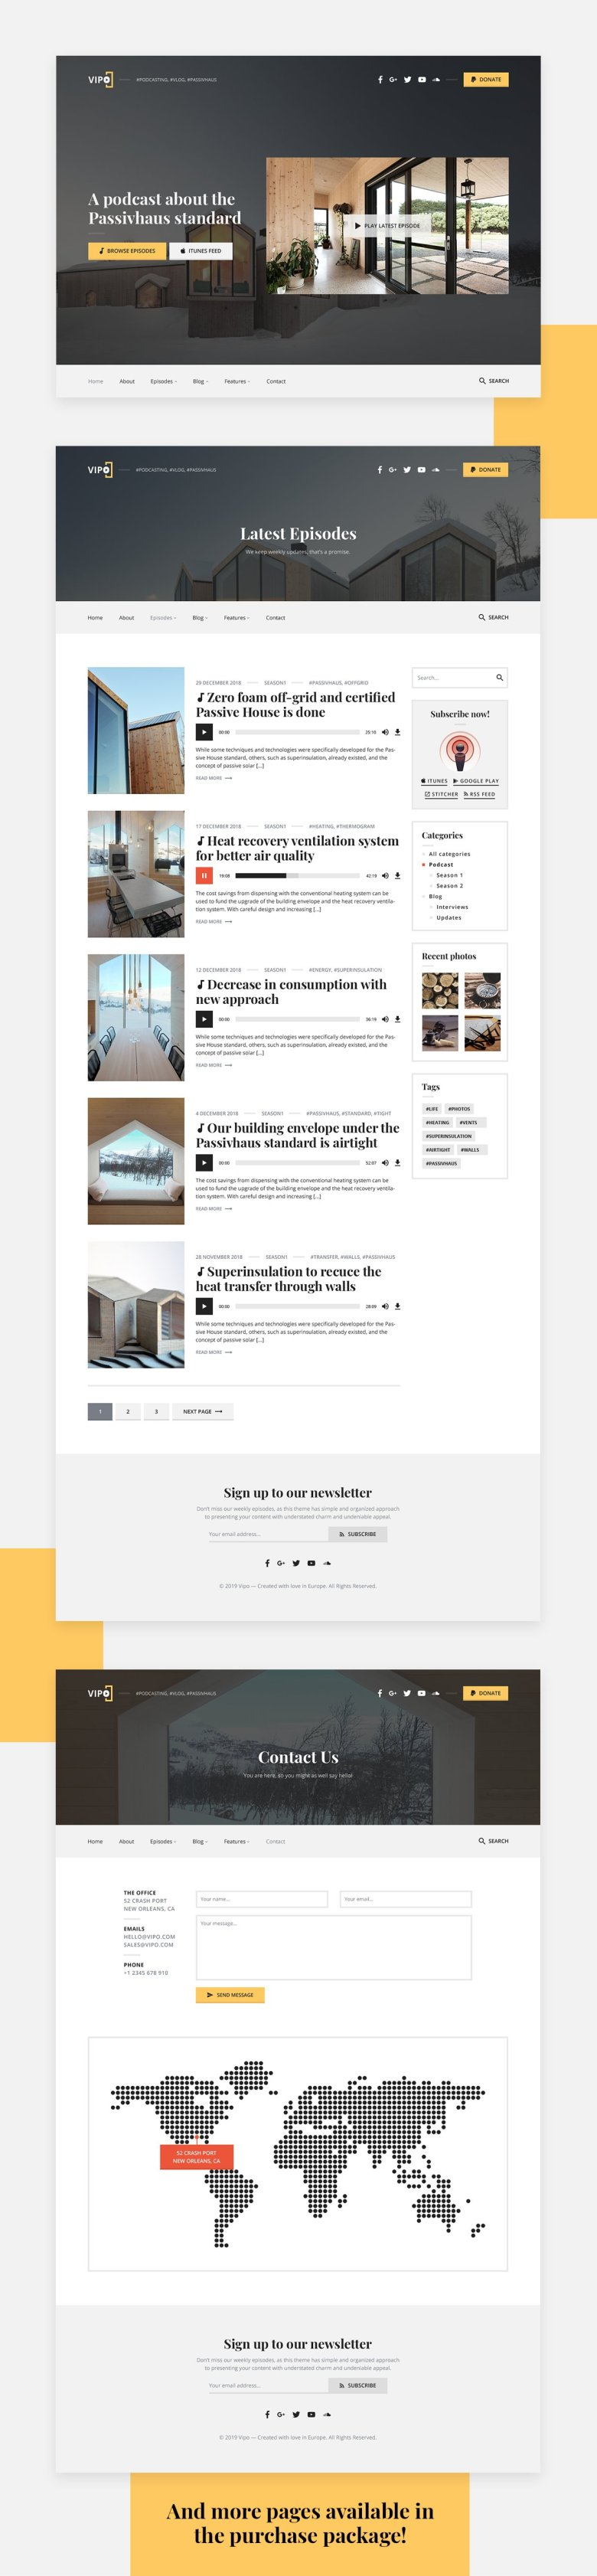 Vipo - Podcast PSD Template - 1